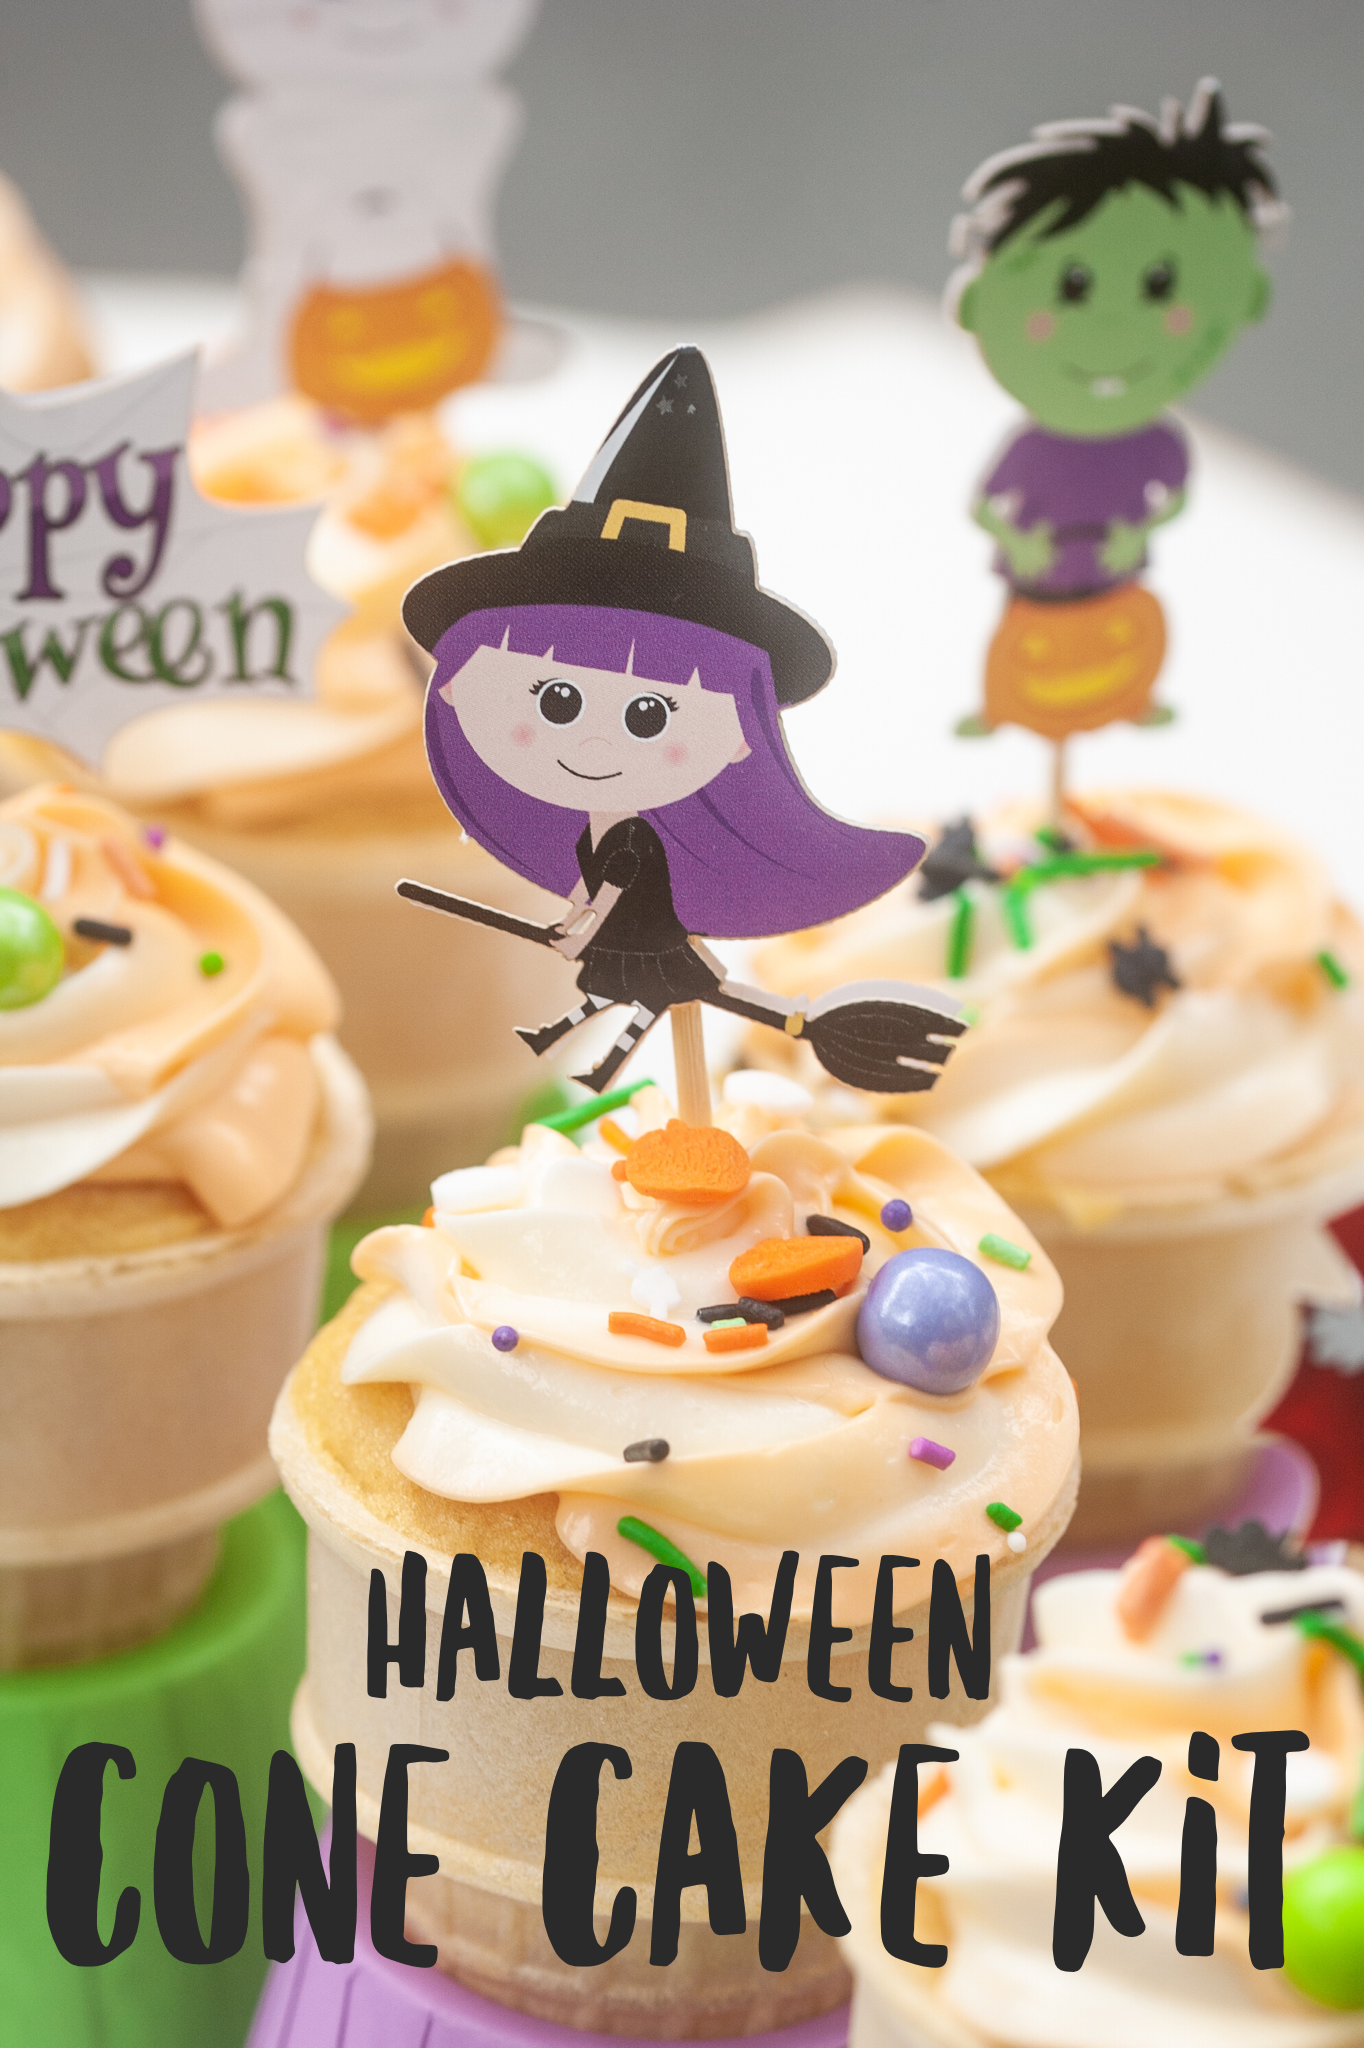 Halloween Cone Cake Kit Party Pack Yippee Cone Cakes Cake